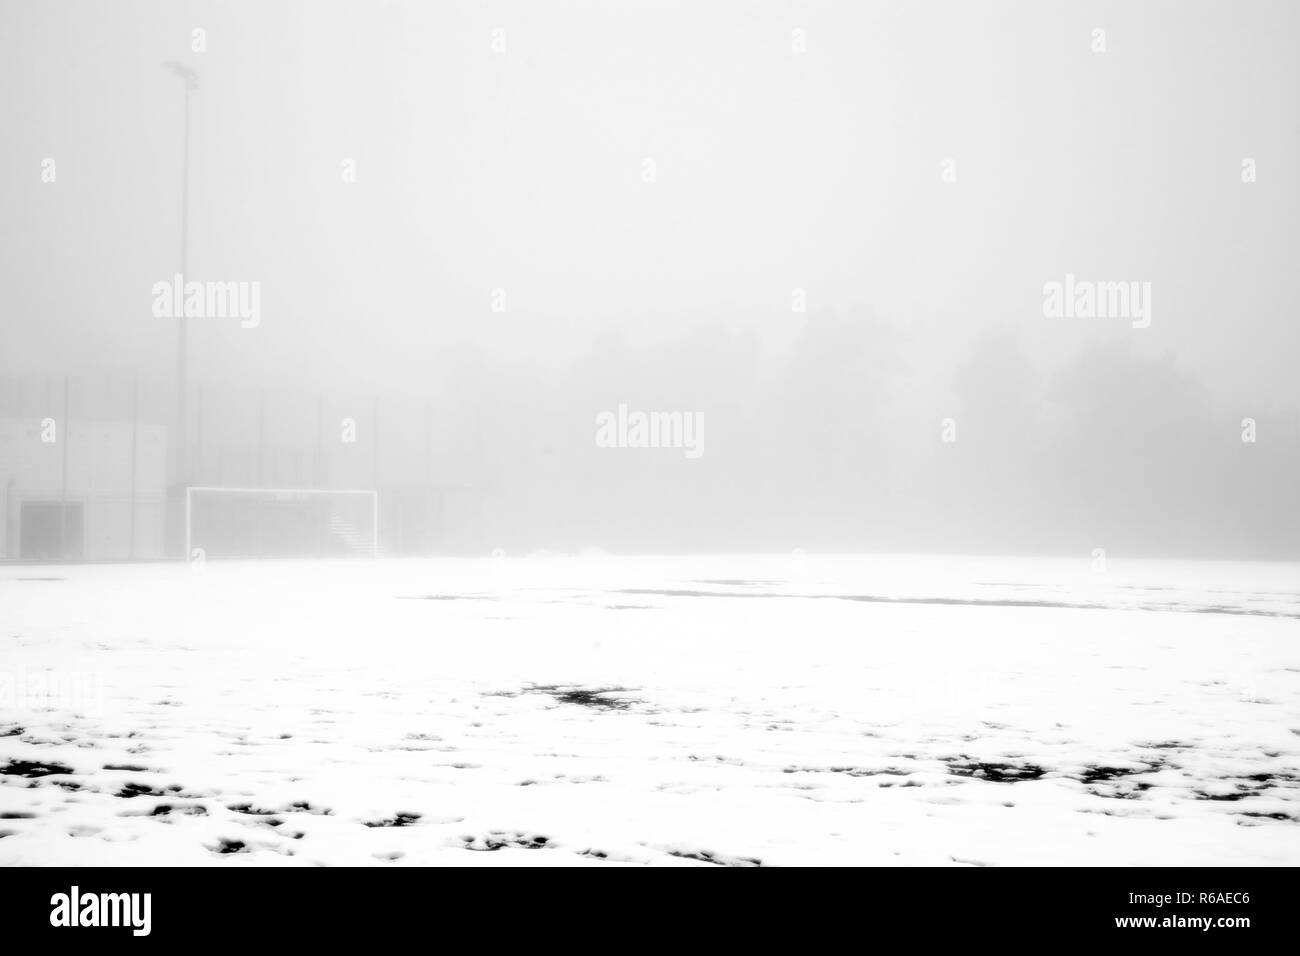 Soccer Field In The Snow And Fog - Stock Image